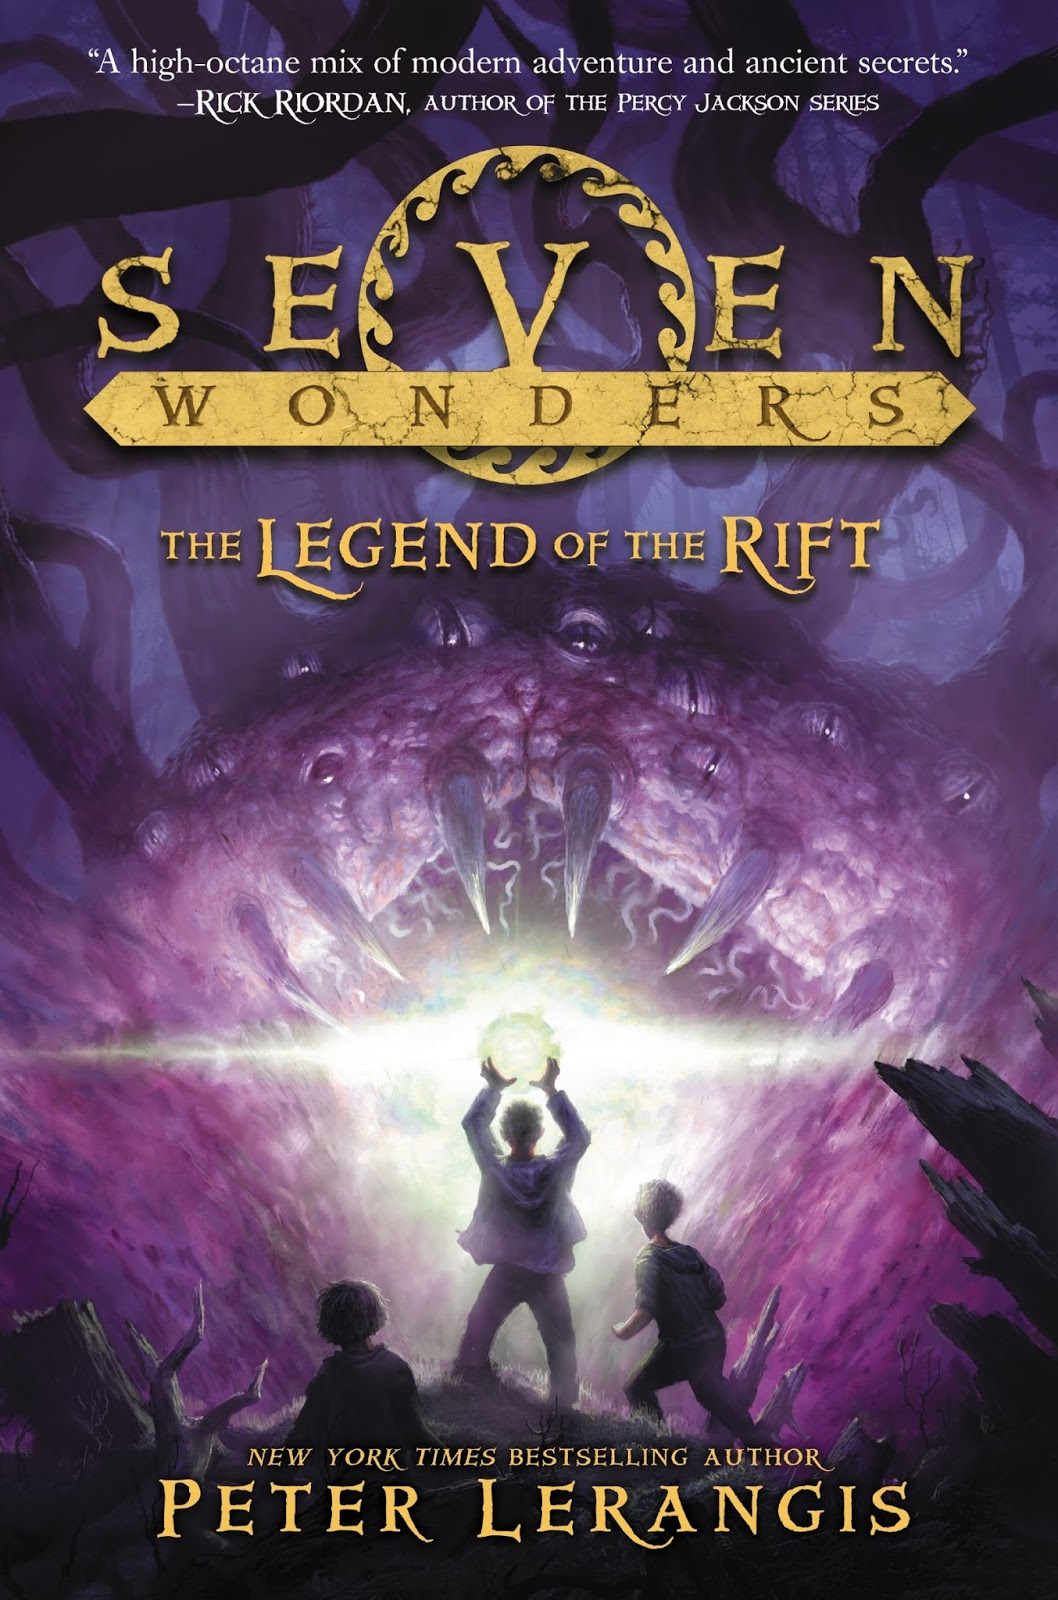 The Legend of the Rift by Peter Lerangis